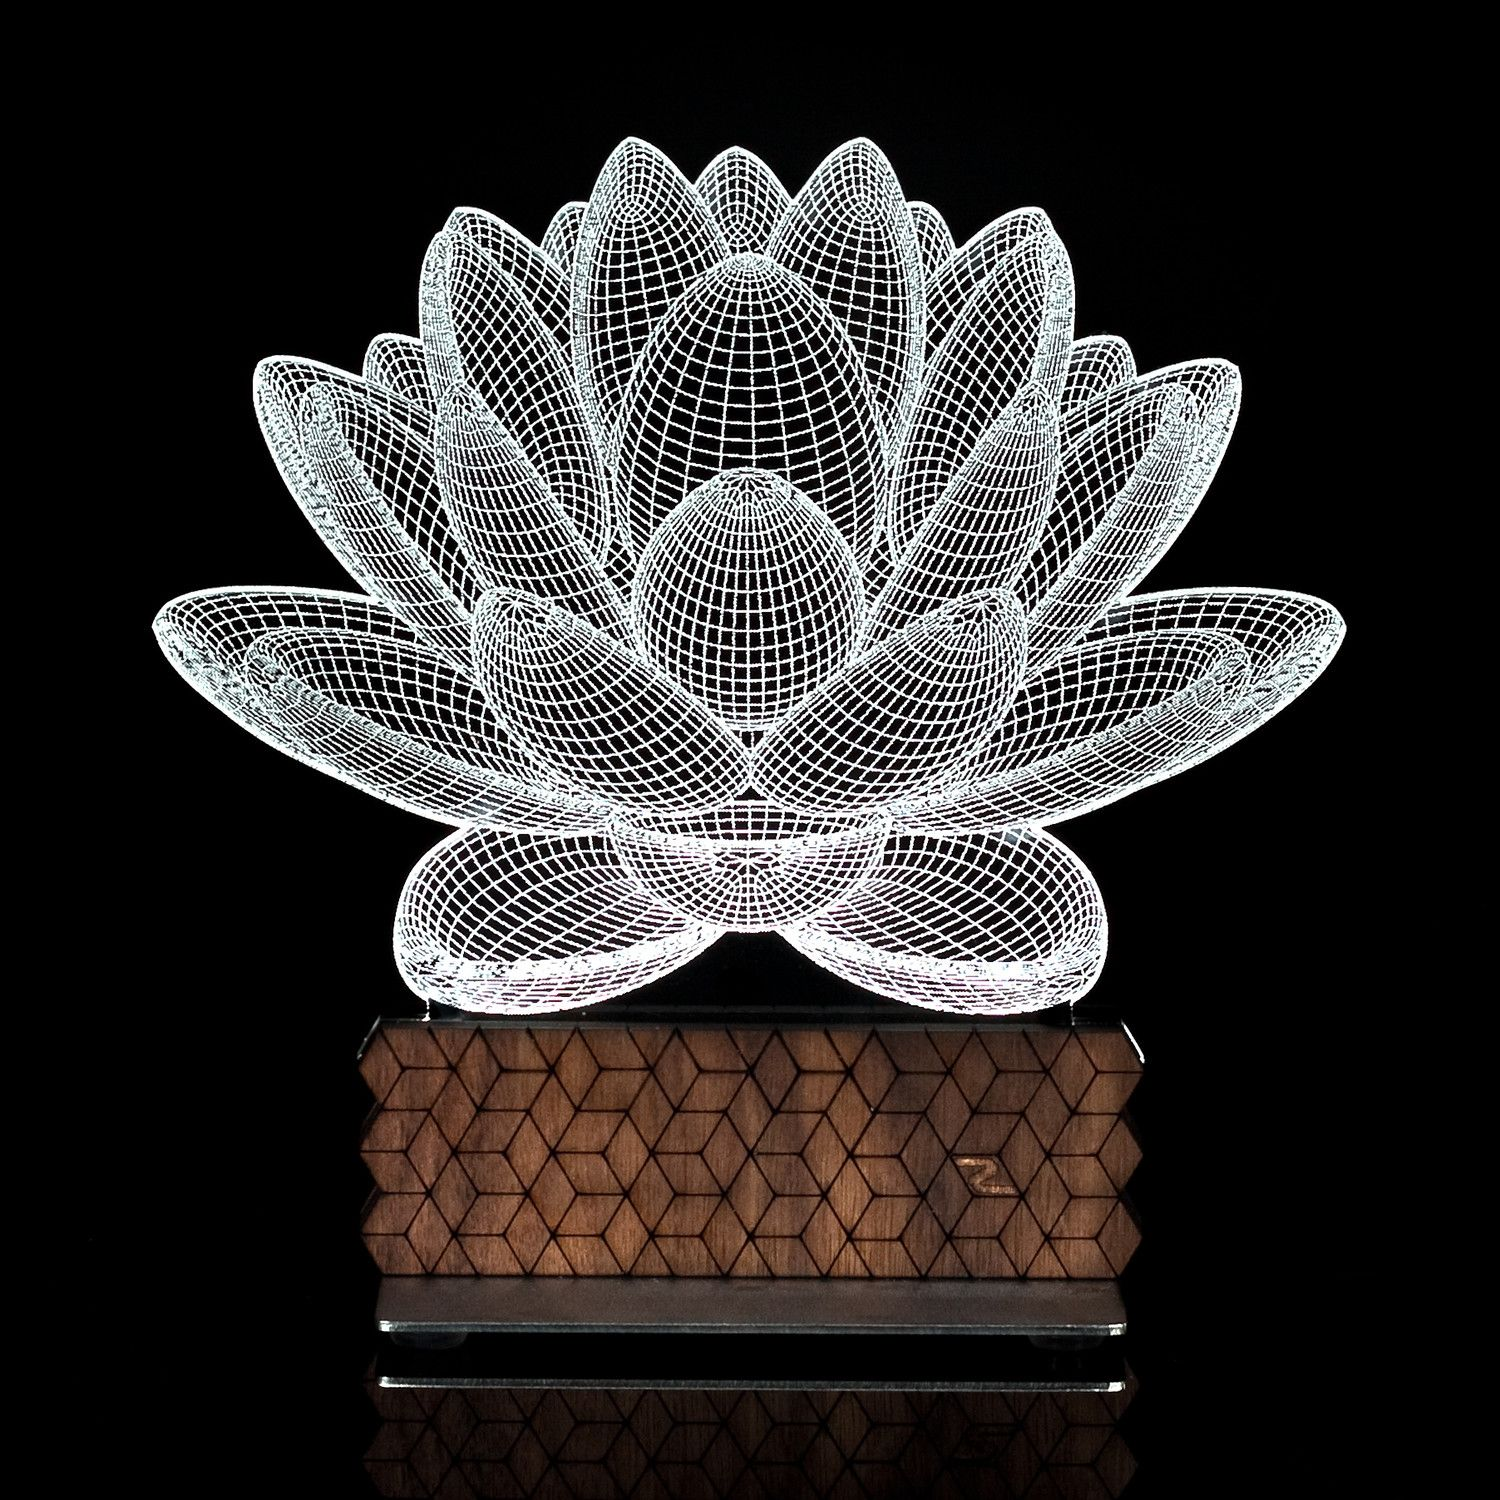 3d Illusion Lamp Lotus Generation 2 If You Re An Innovator Who Likes To Think Outside The Box This Acrylic O 3d Illusion Lamp 3d Illusions Touch Of Modern